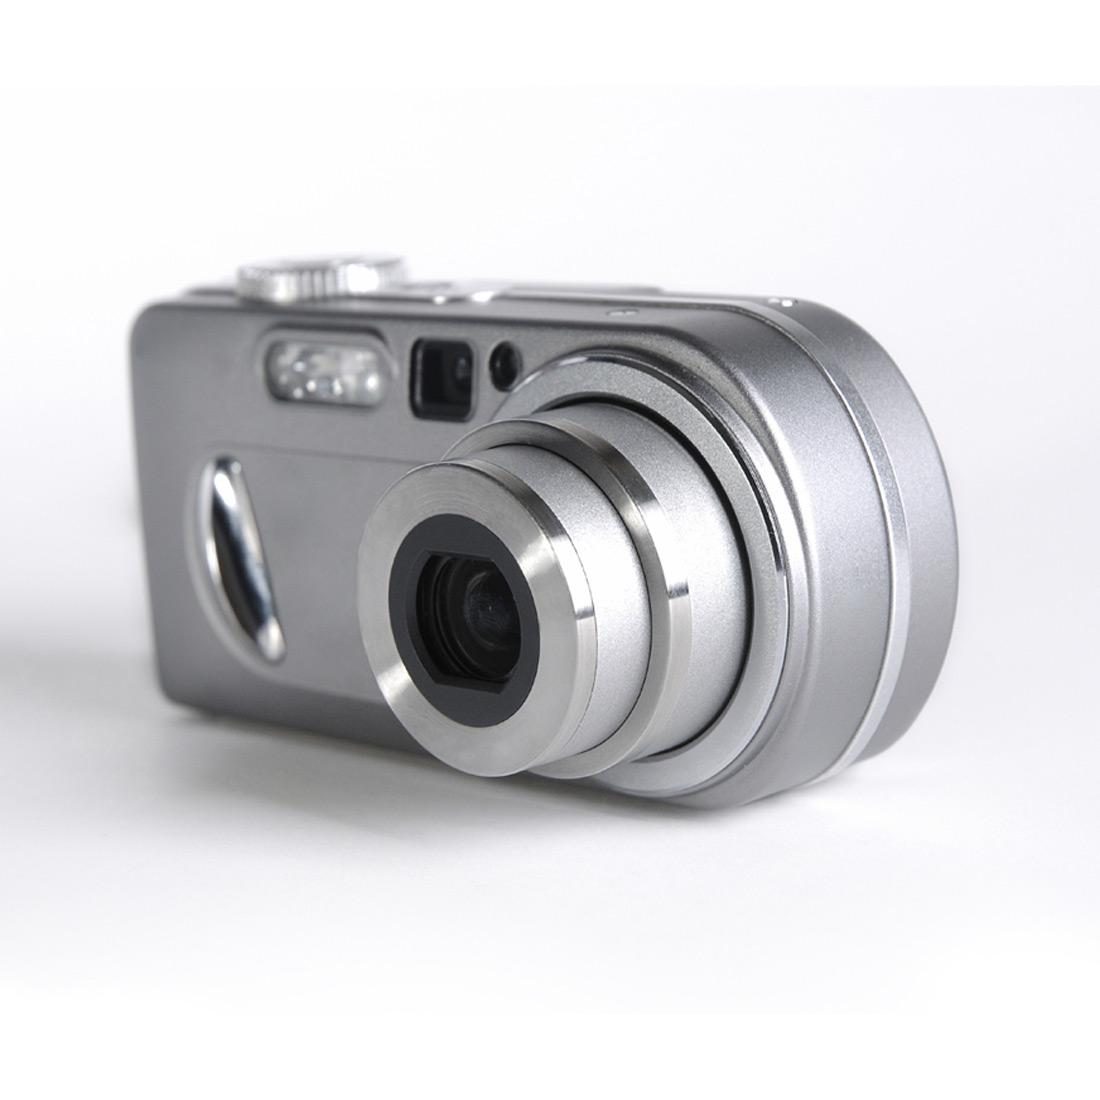 olympus-stylus-750-7-1mp-digital-camera-2